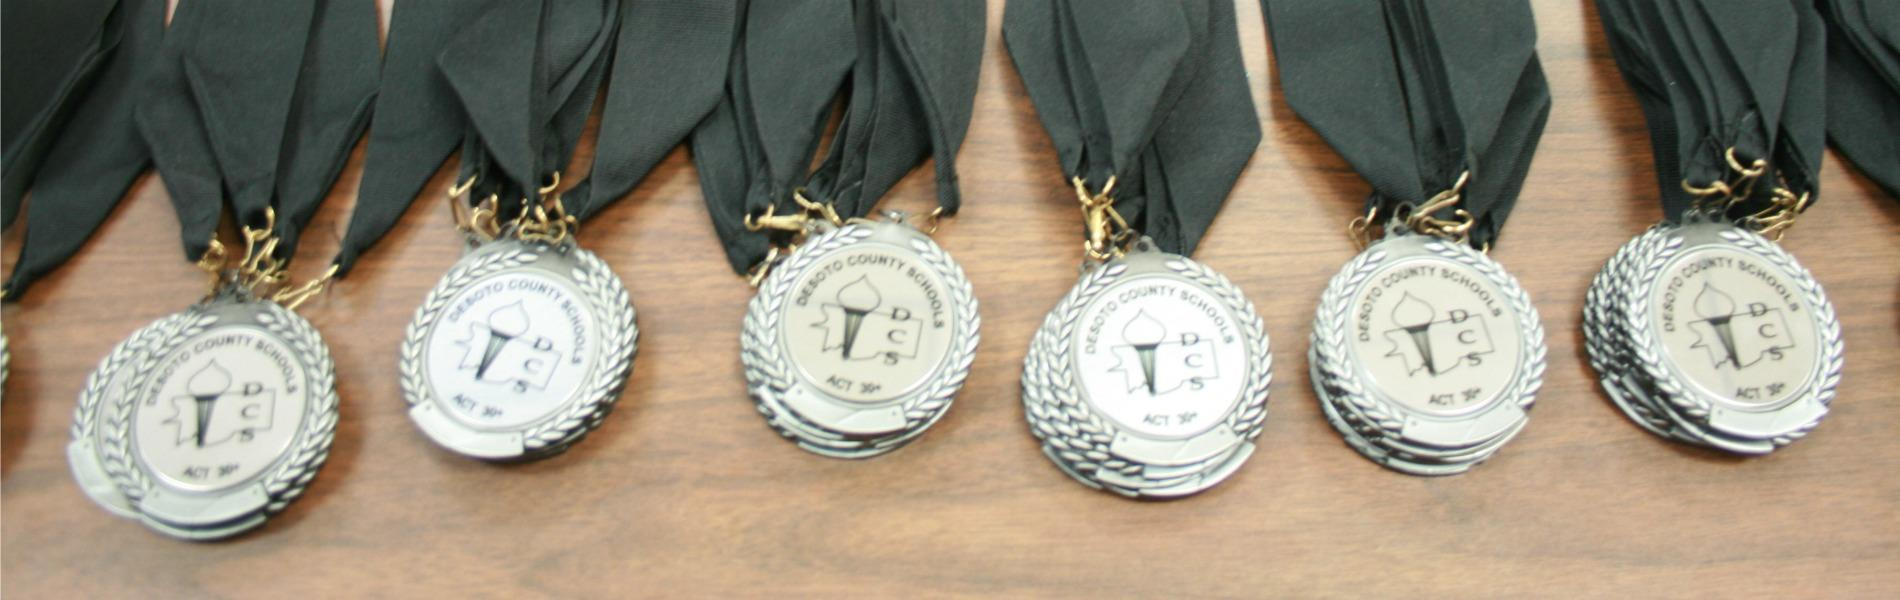 ACT Award Medals